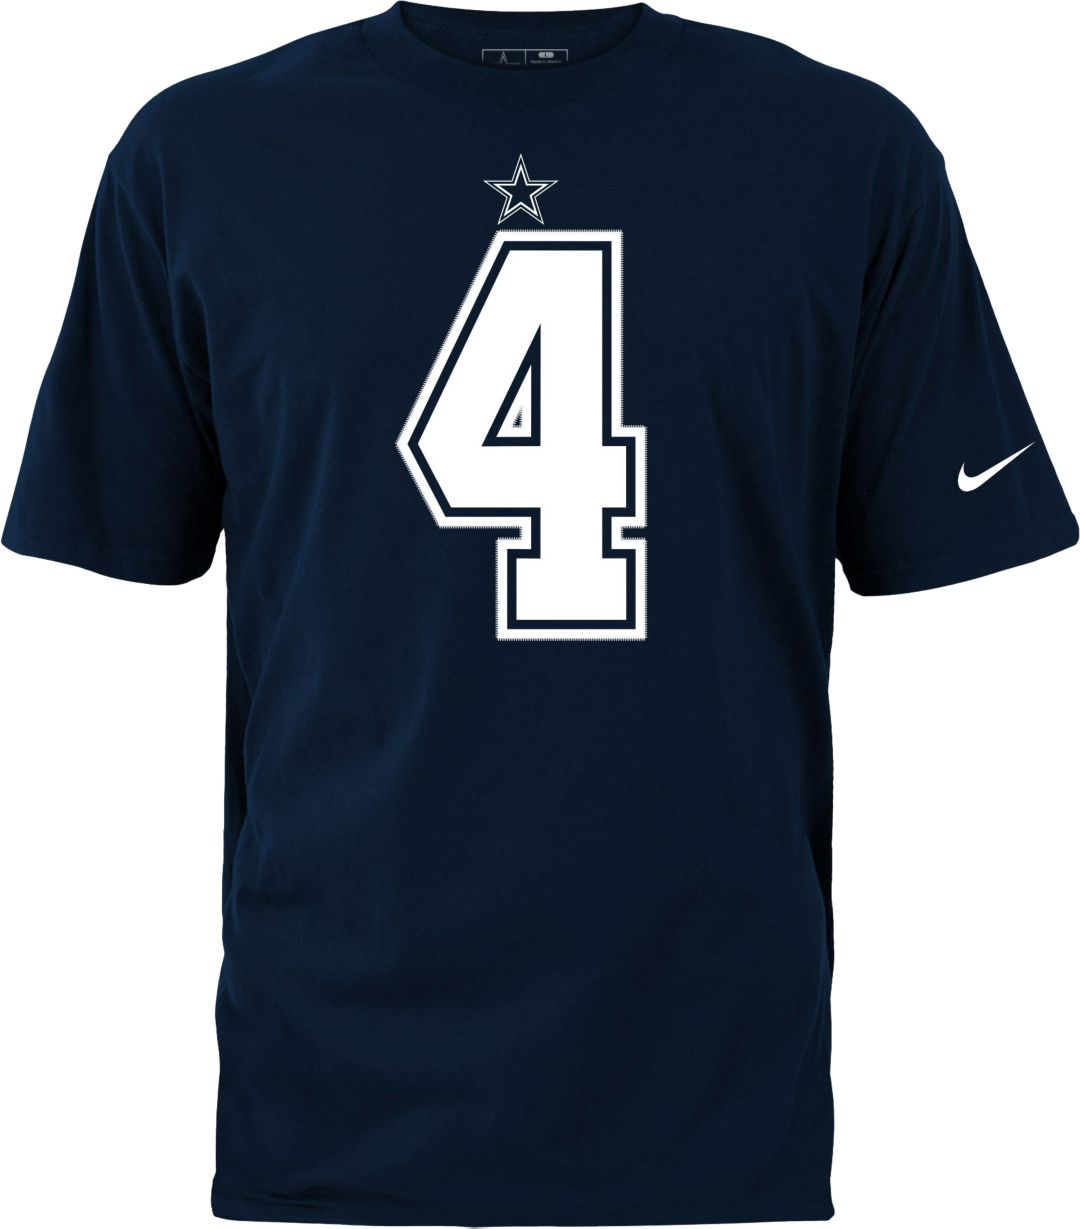 sale retailer e3874 6c135 Nike Youth Dallas Cowboys Dak Prescott #4 Navy Pride T-Shirt